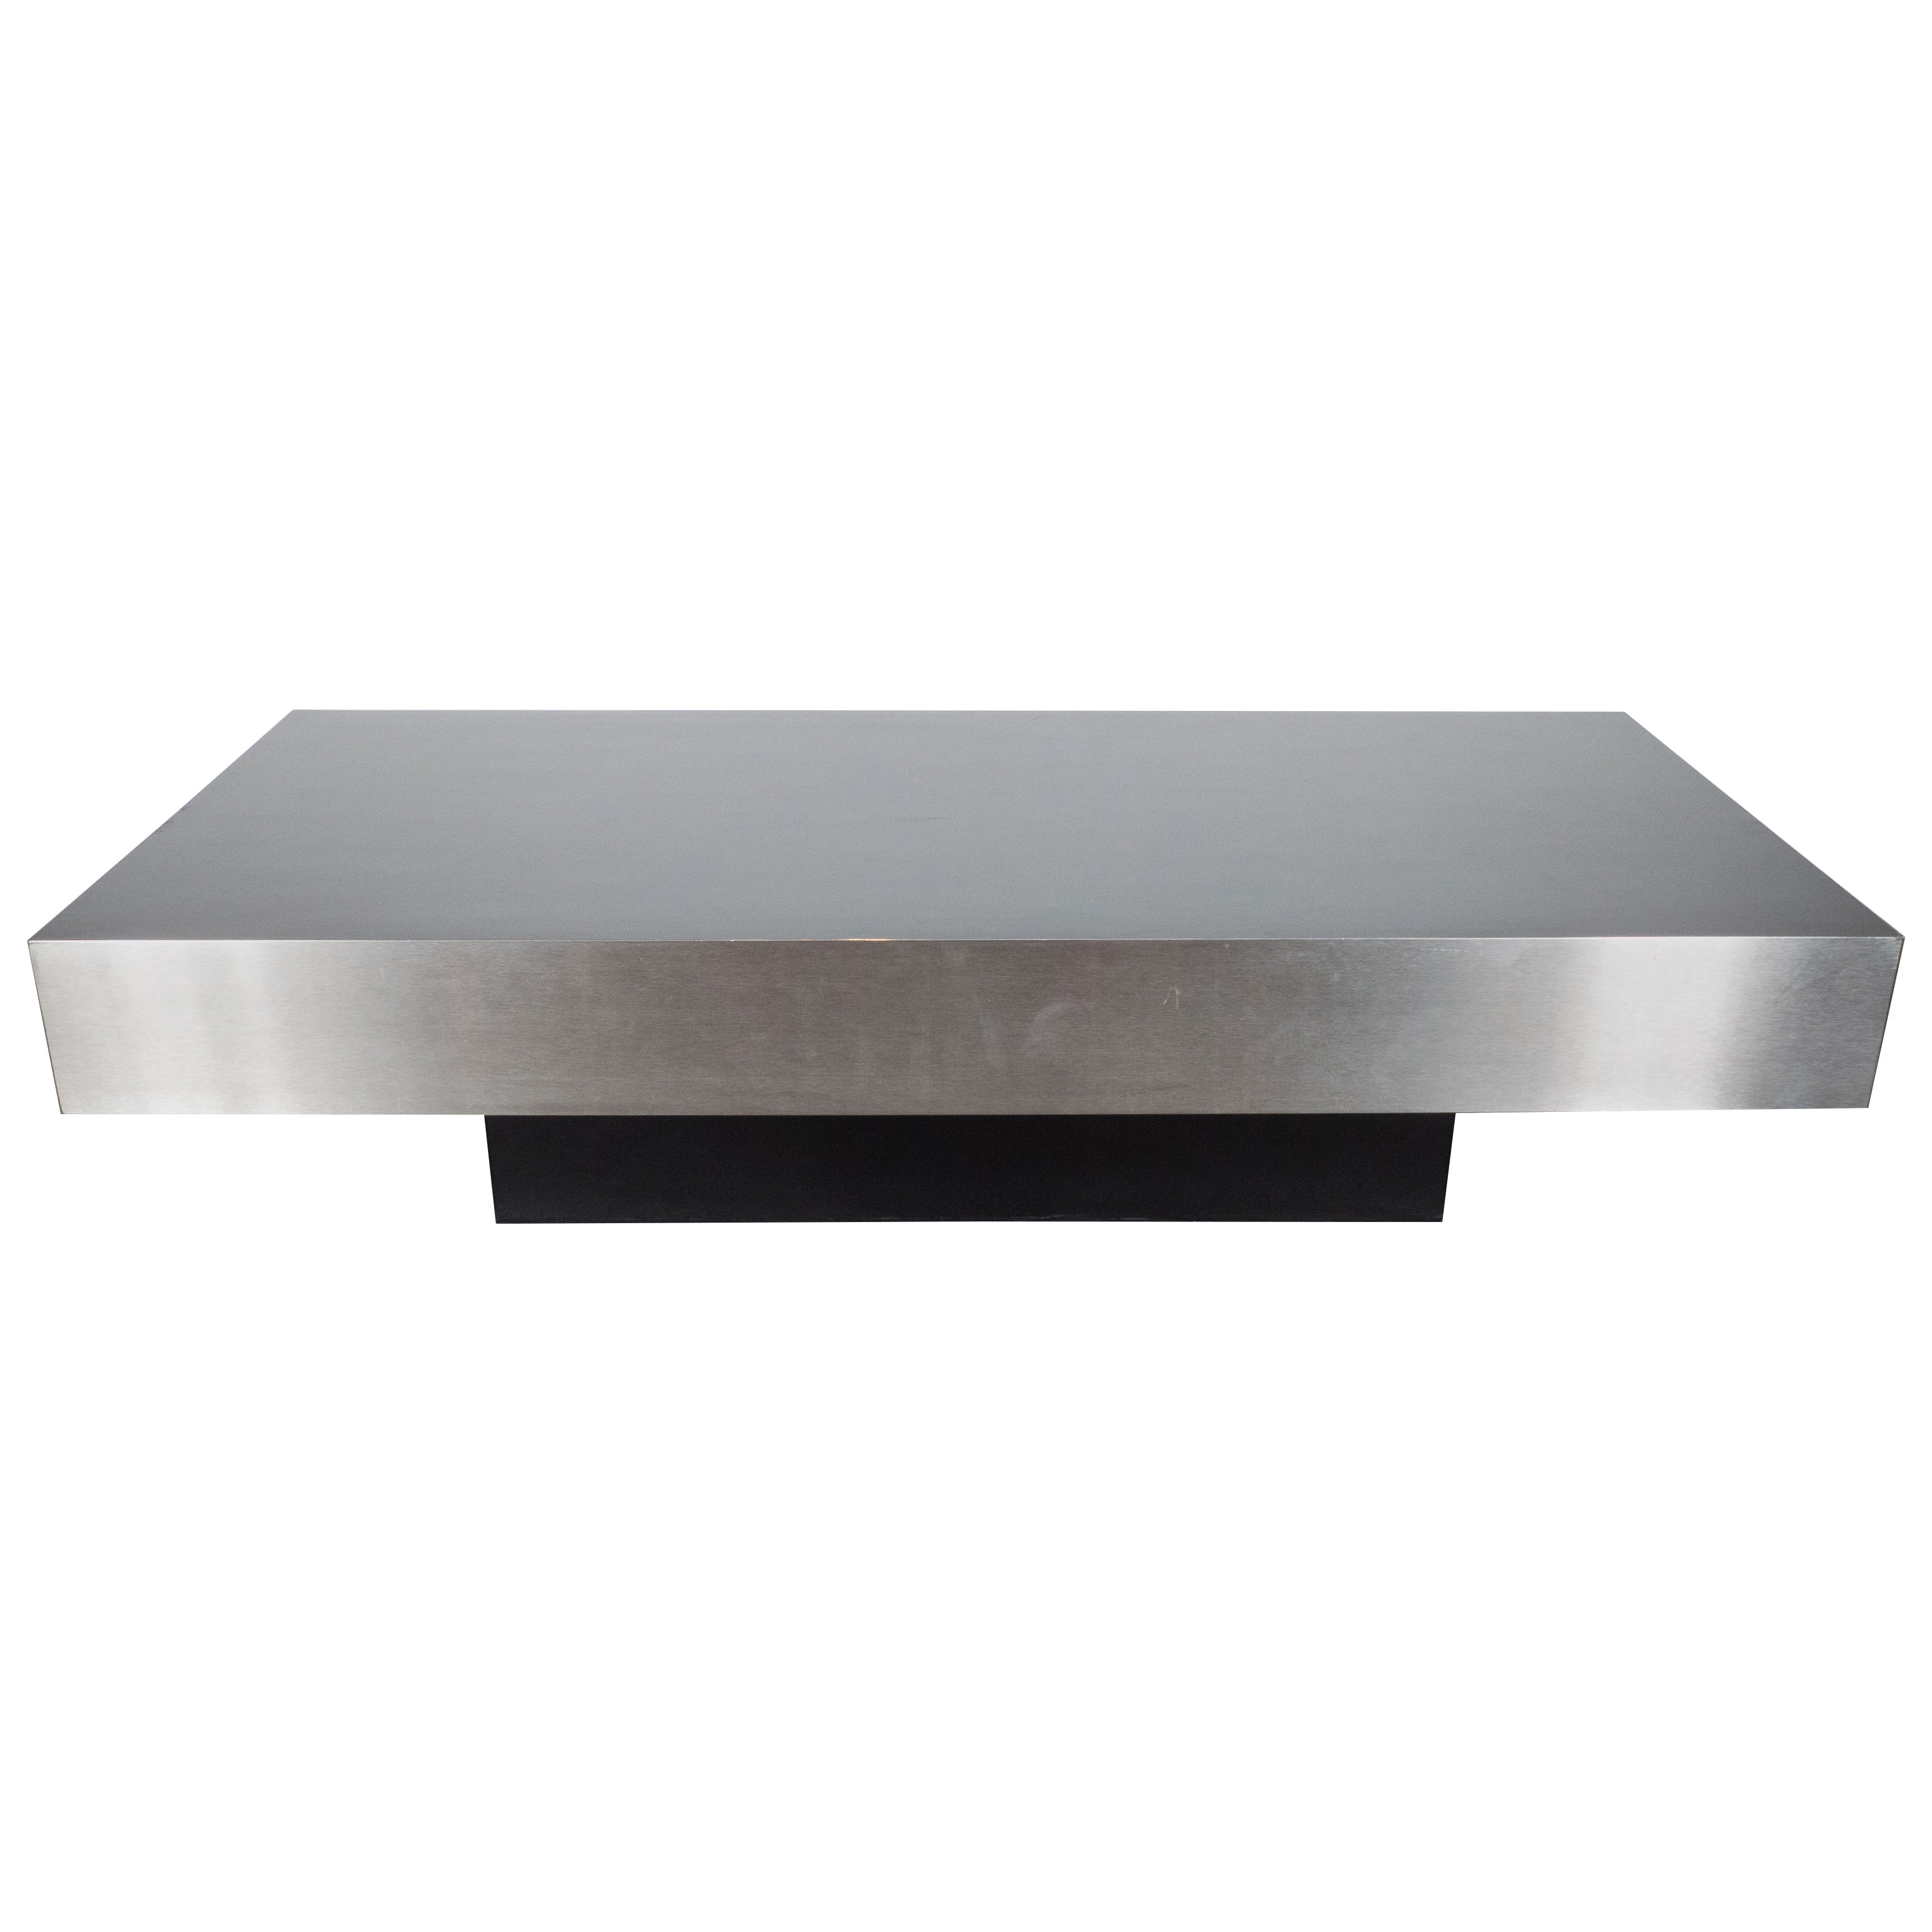 Incroyable Mid Century Modernist Low Cocktail Table In Brushed Aluminium, Style Of  Breuton